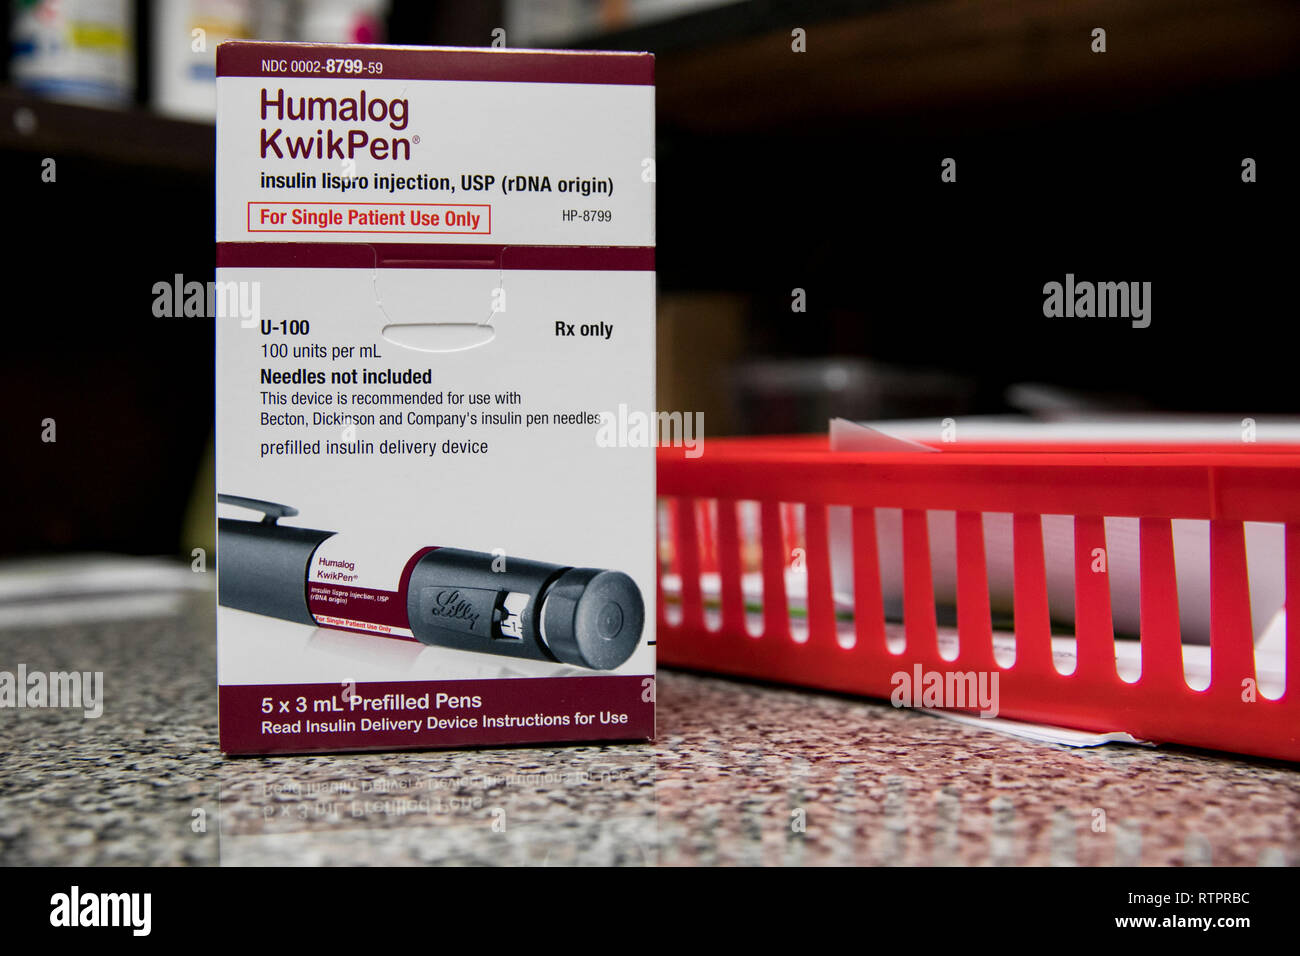 A package of Humalog KwikPen insulin injectors photographed in a pharmacy. - Stock Image